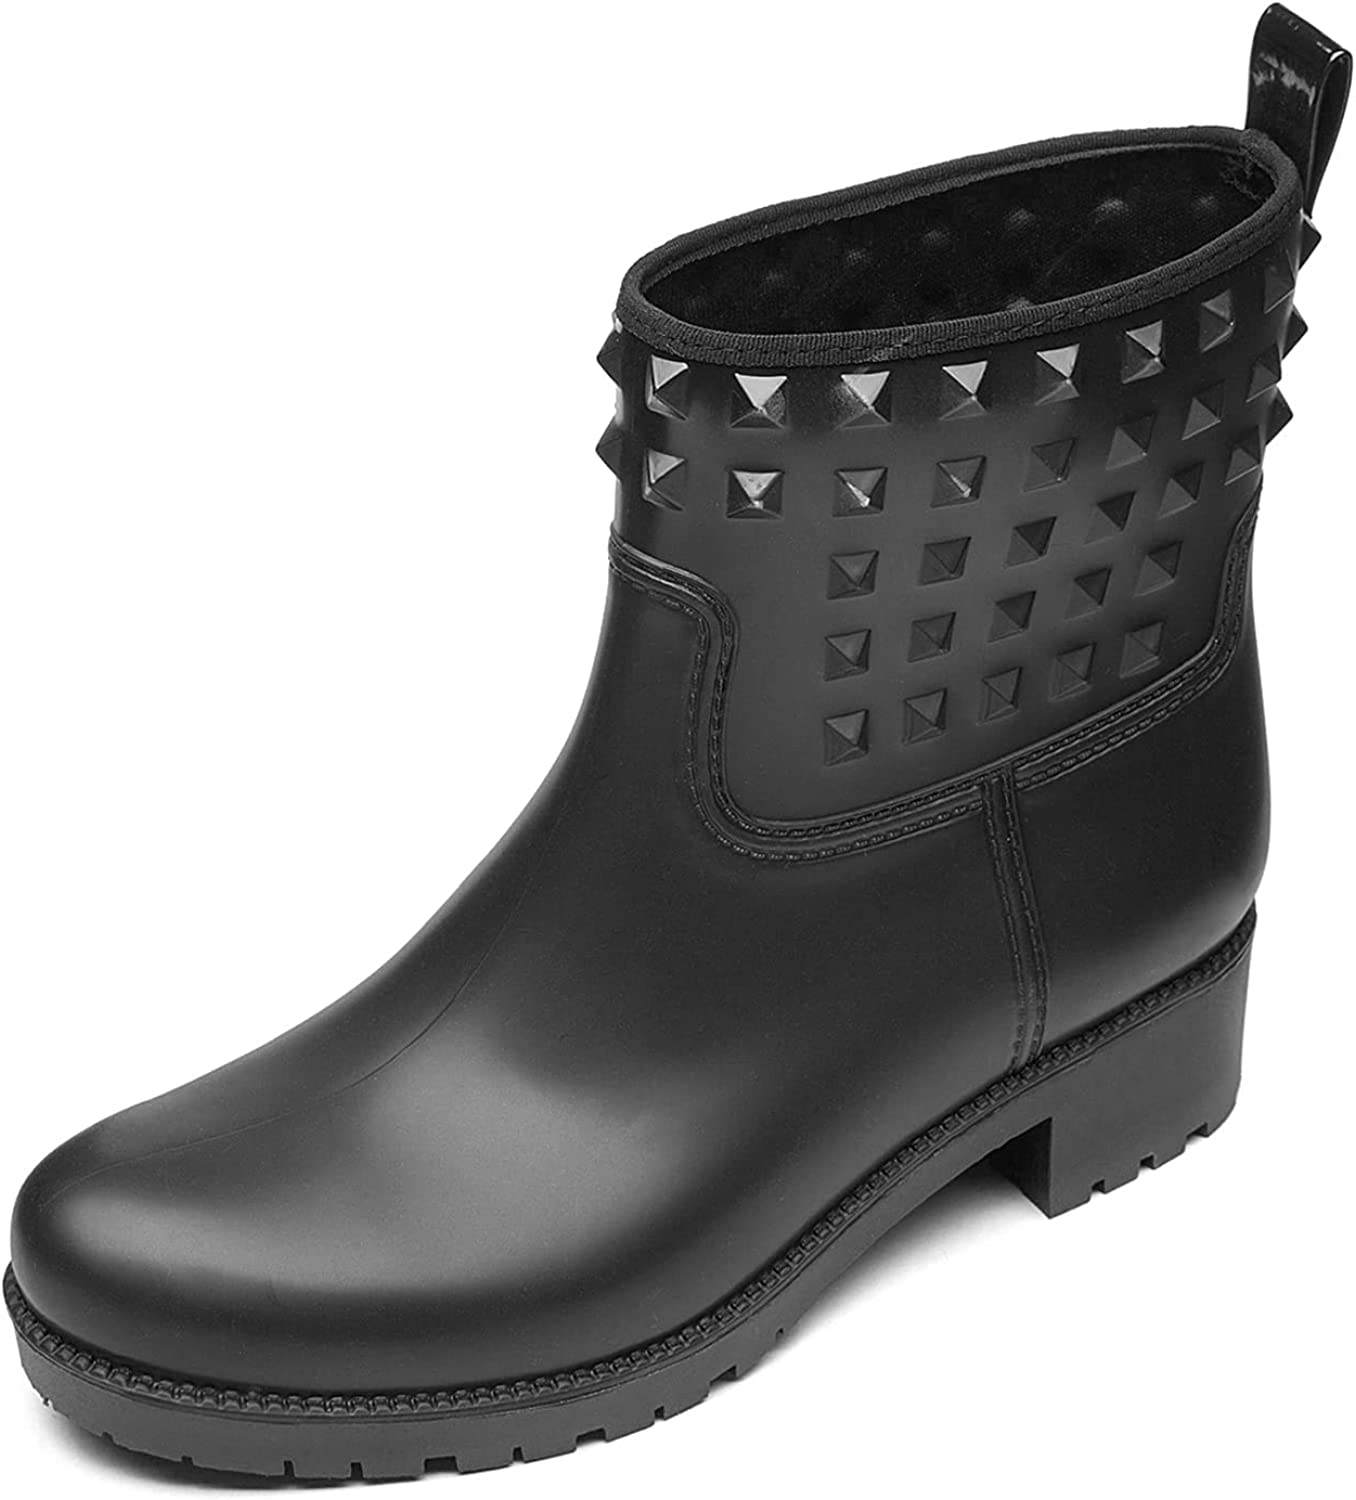 DKSUKO Women's Rain Boots Max 61% OFF with Rivet Wome Rubber Ankle Cheap super special price for